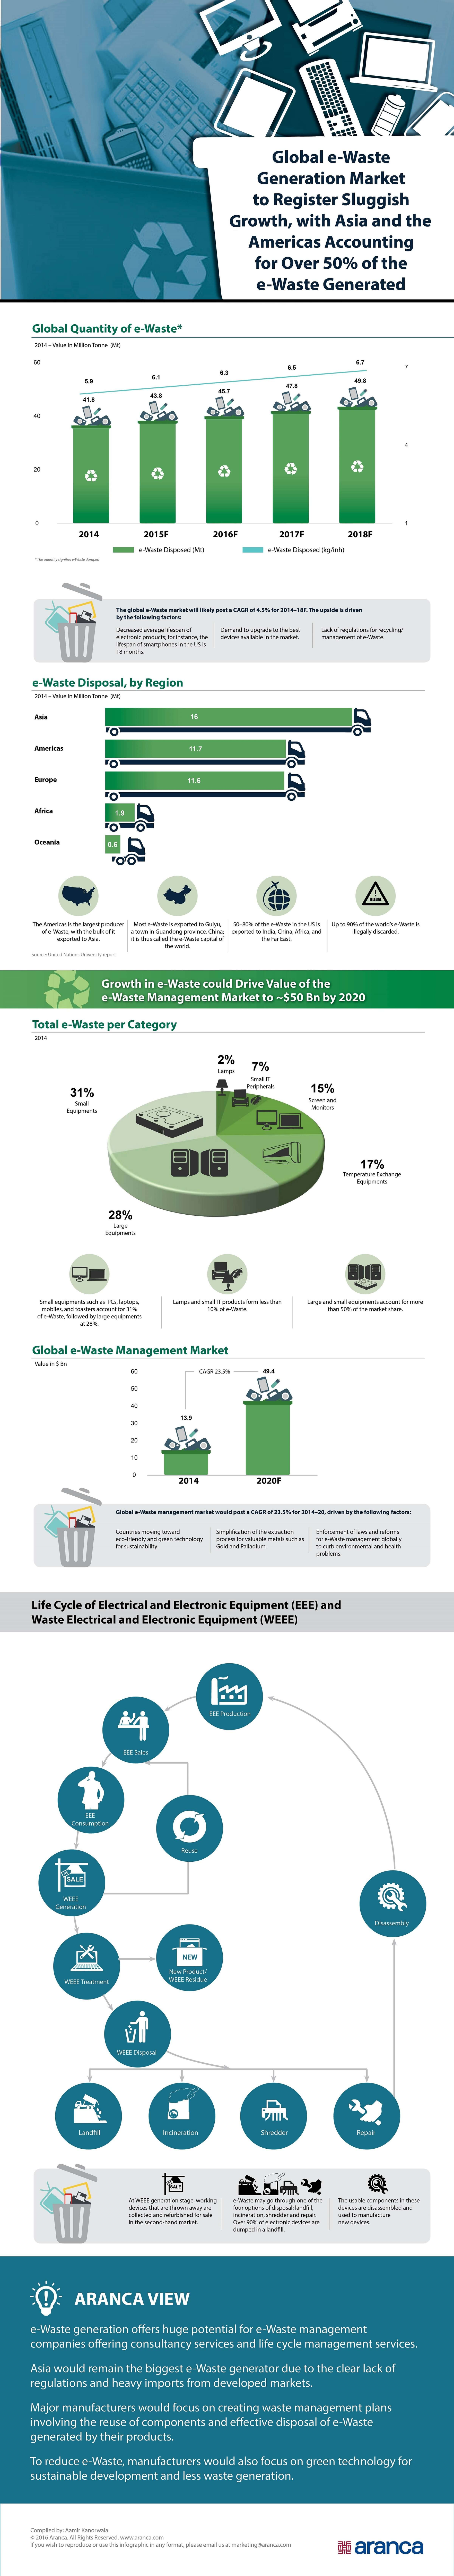 e-Waste Generation & Management